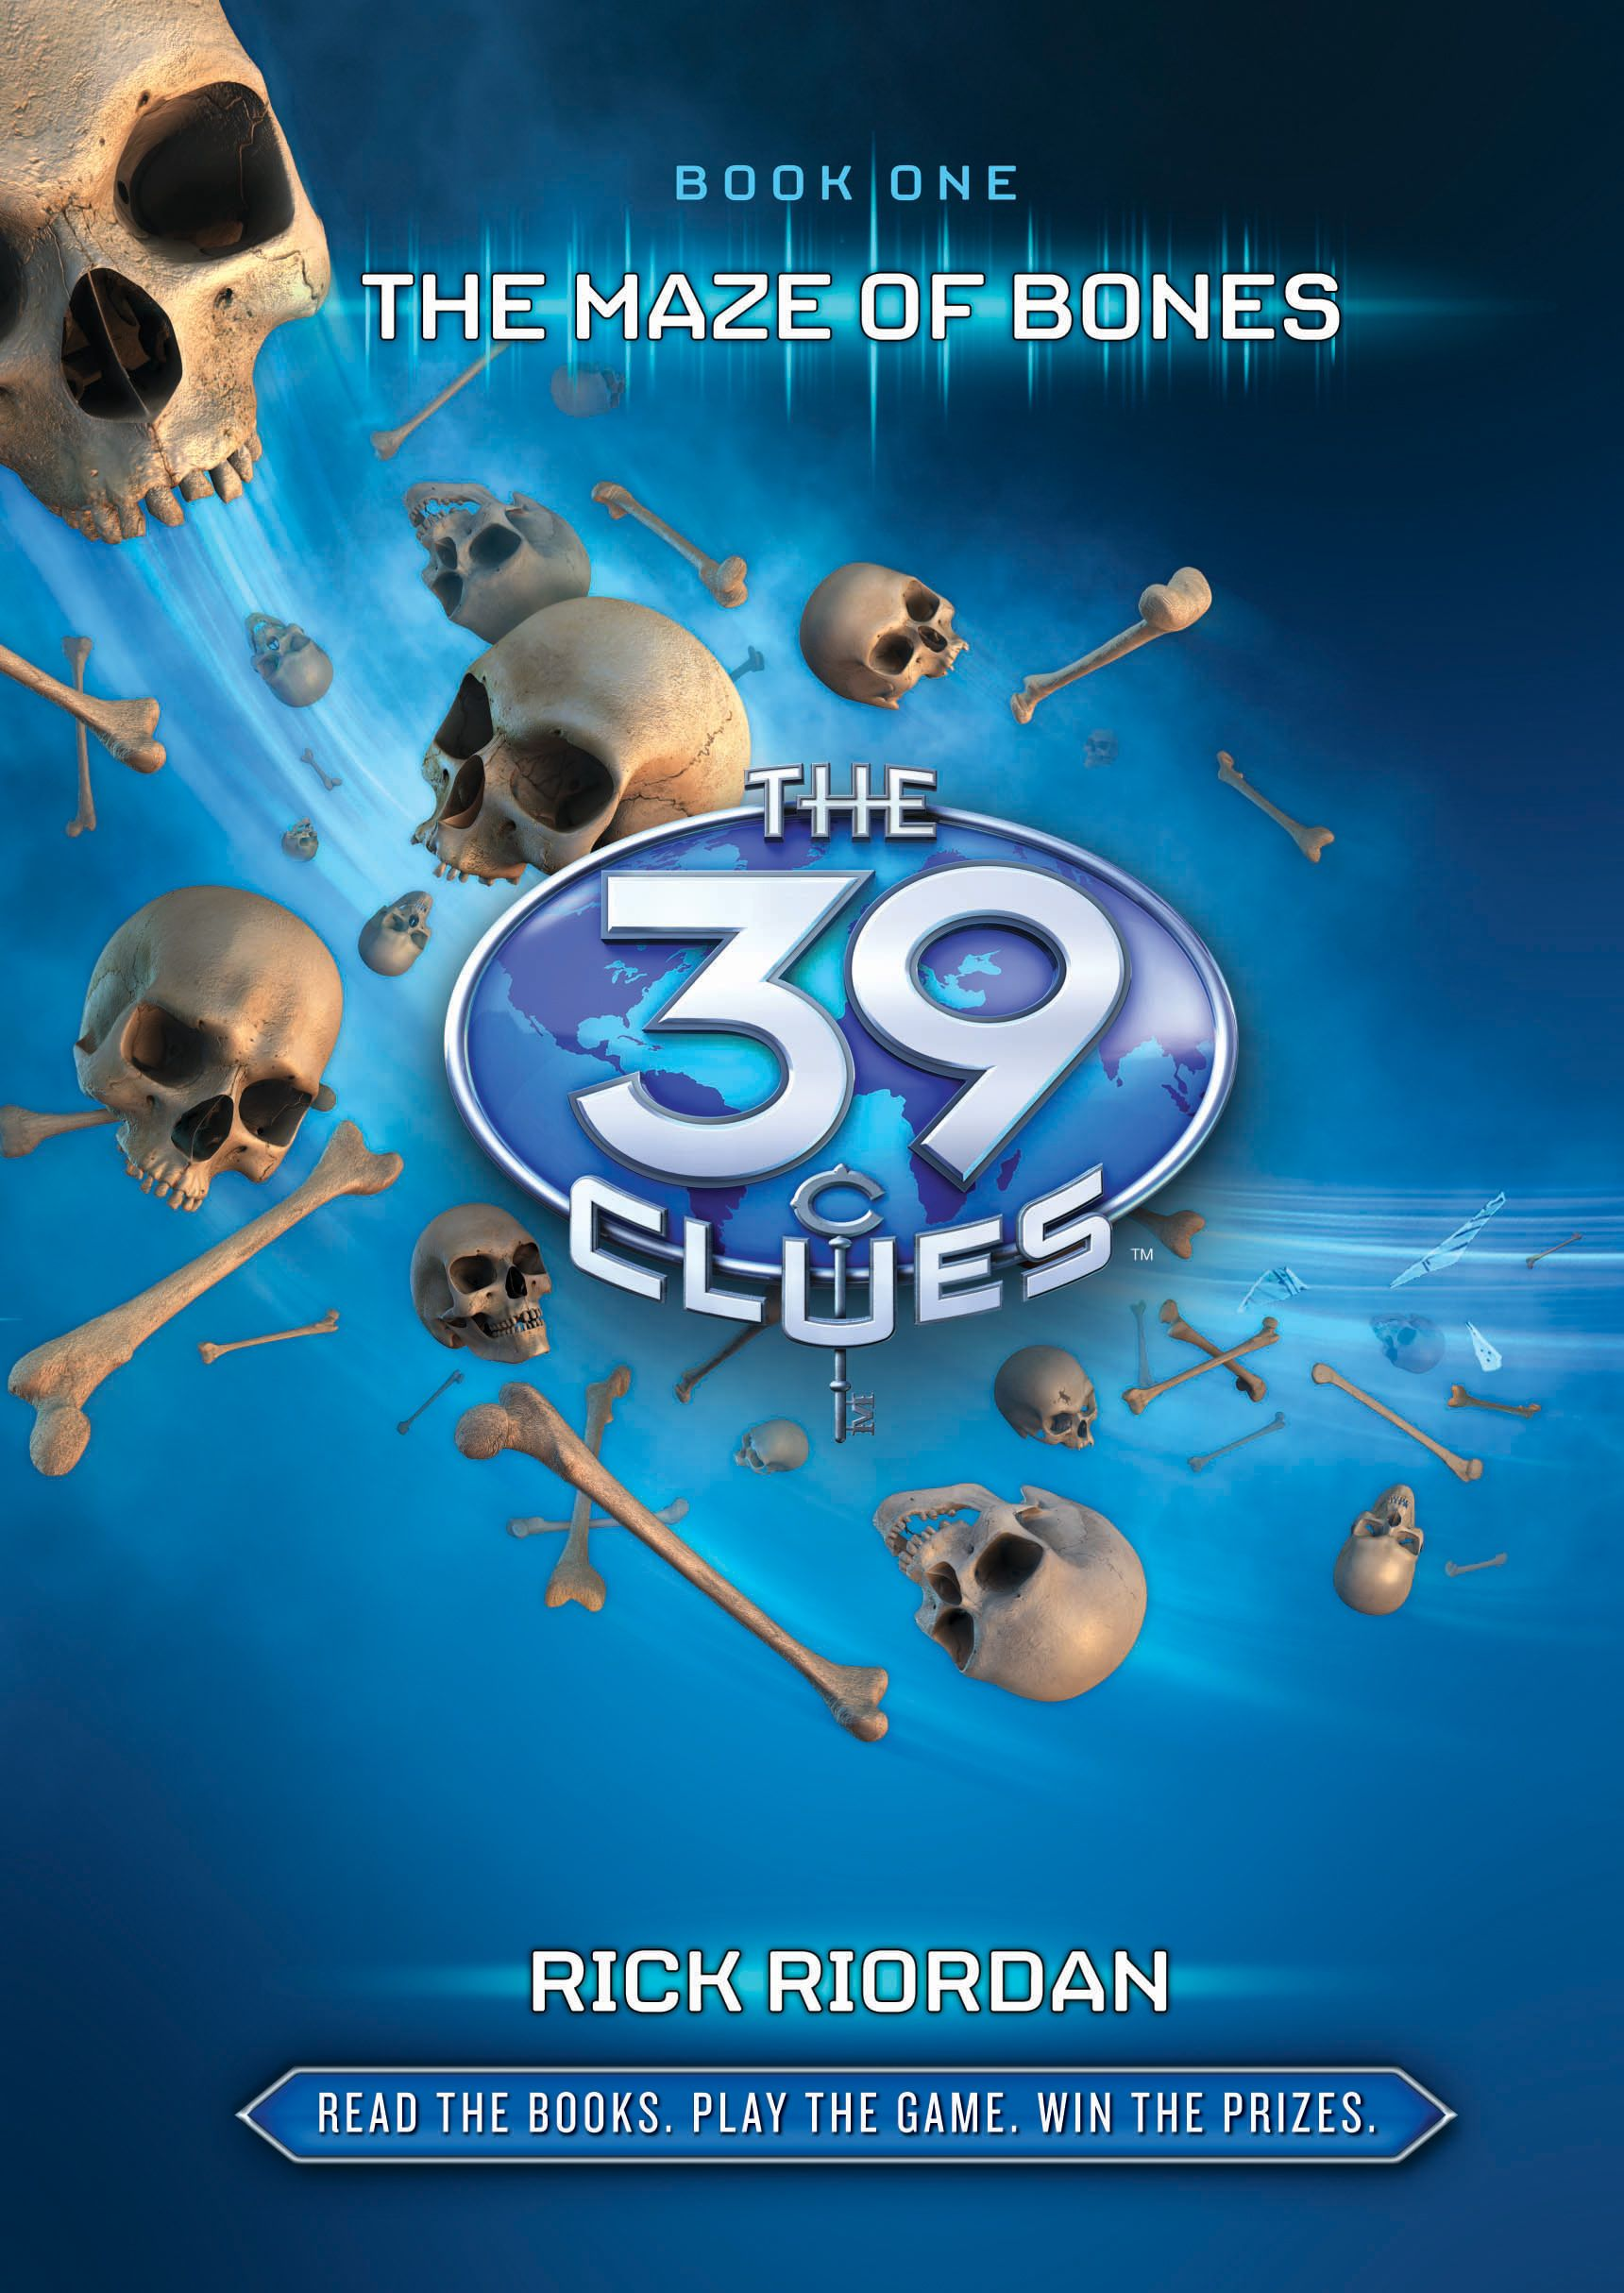 Start The 39 Clues With Maze Of Bones By Rick Riordan